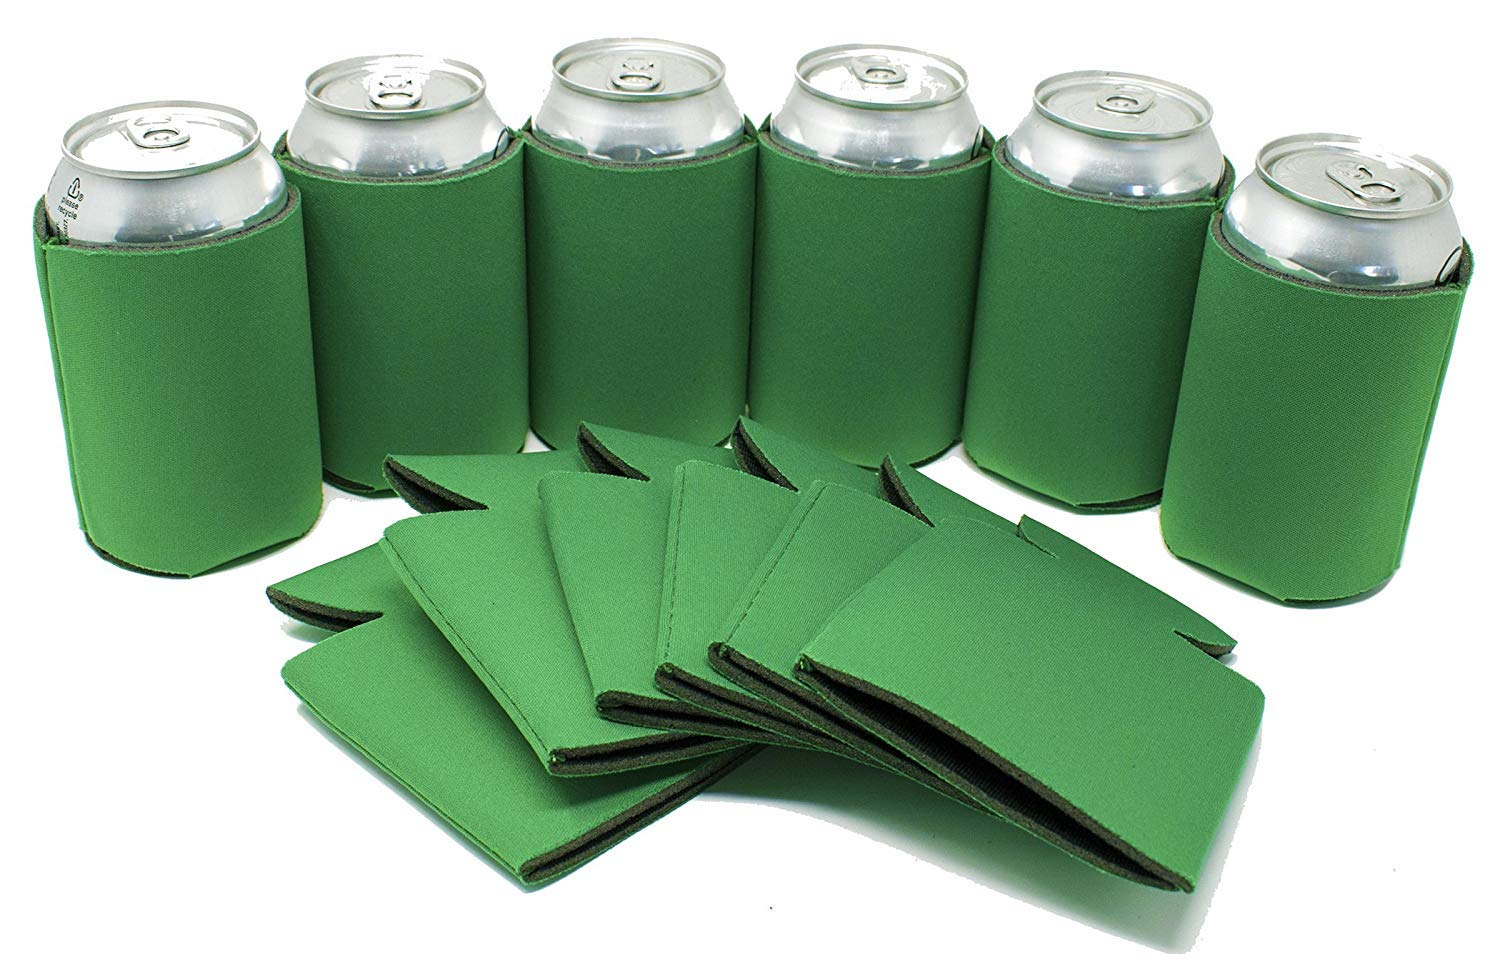 TahoeBay 12 Blank Beer Can Coolers, Plain Bulk Collapsible Soda Cover Coolies, DIY Personalized Sublimation Sleeves for Weddings, Bachelorette Parties, Funny HTV Party Favors (Kelly Green, 12)